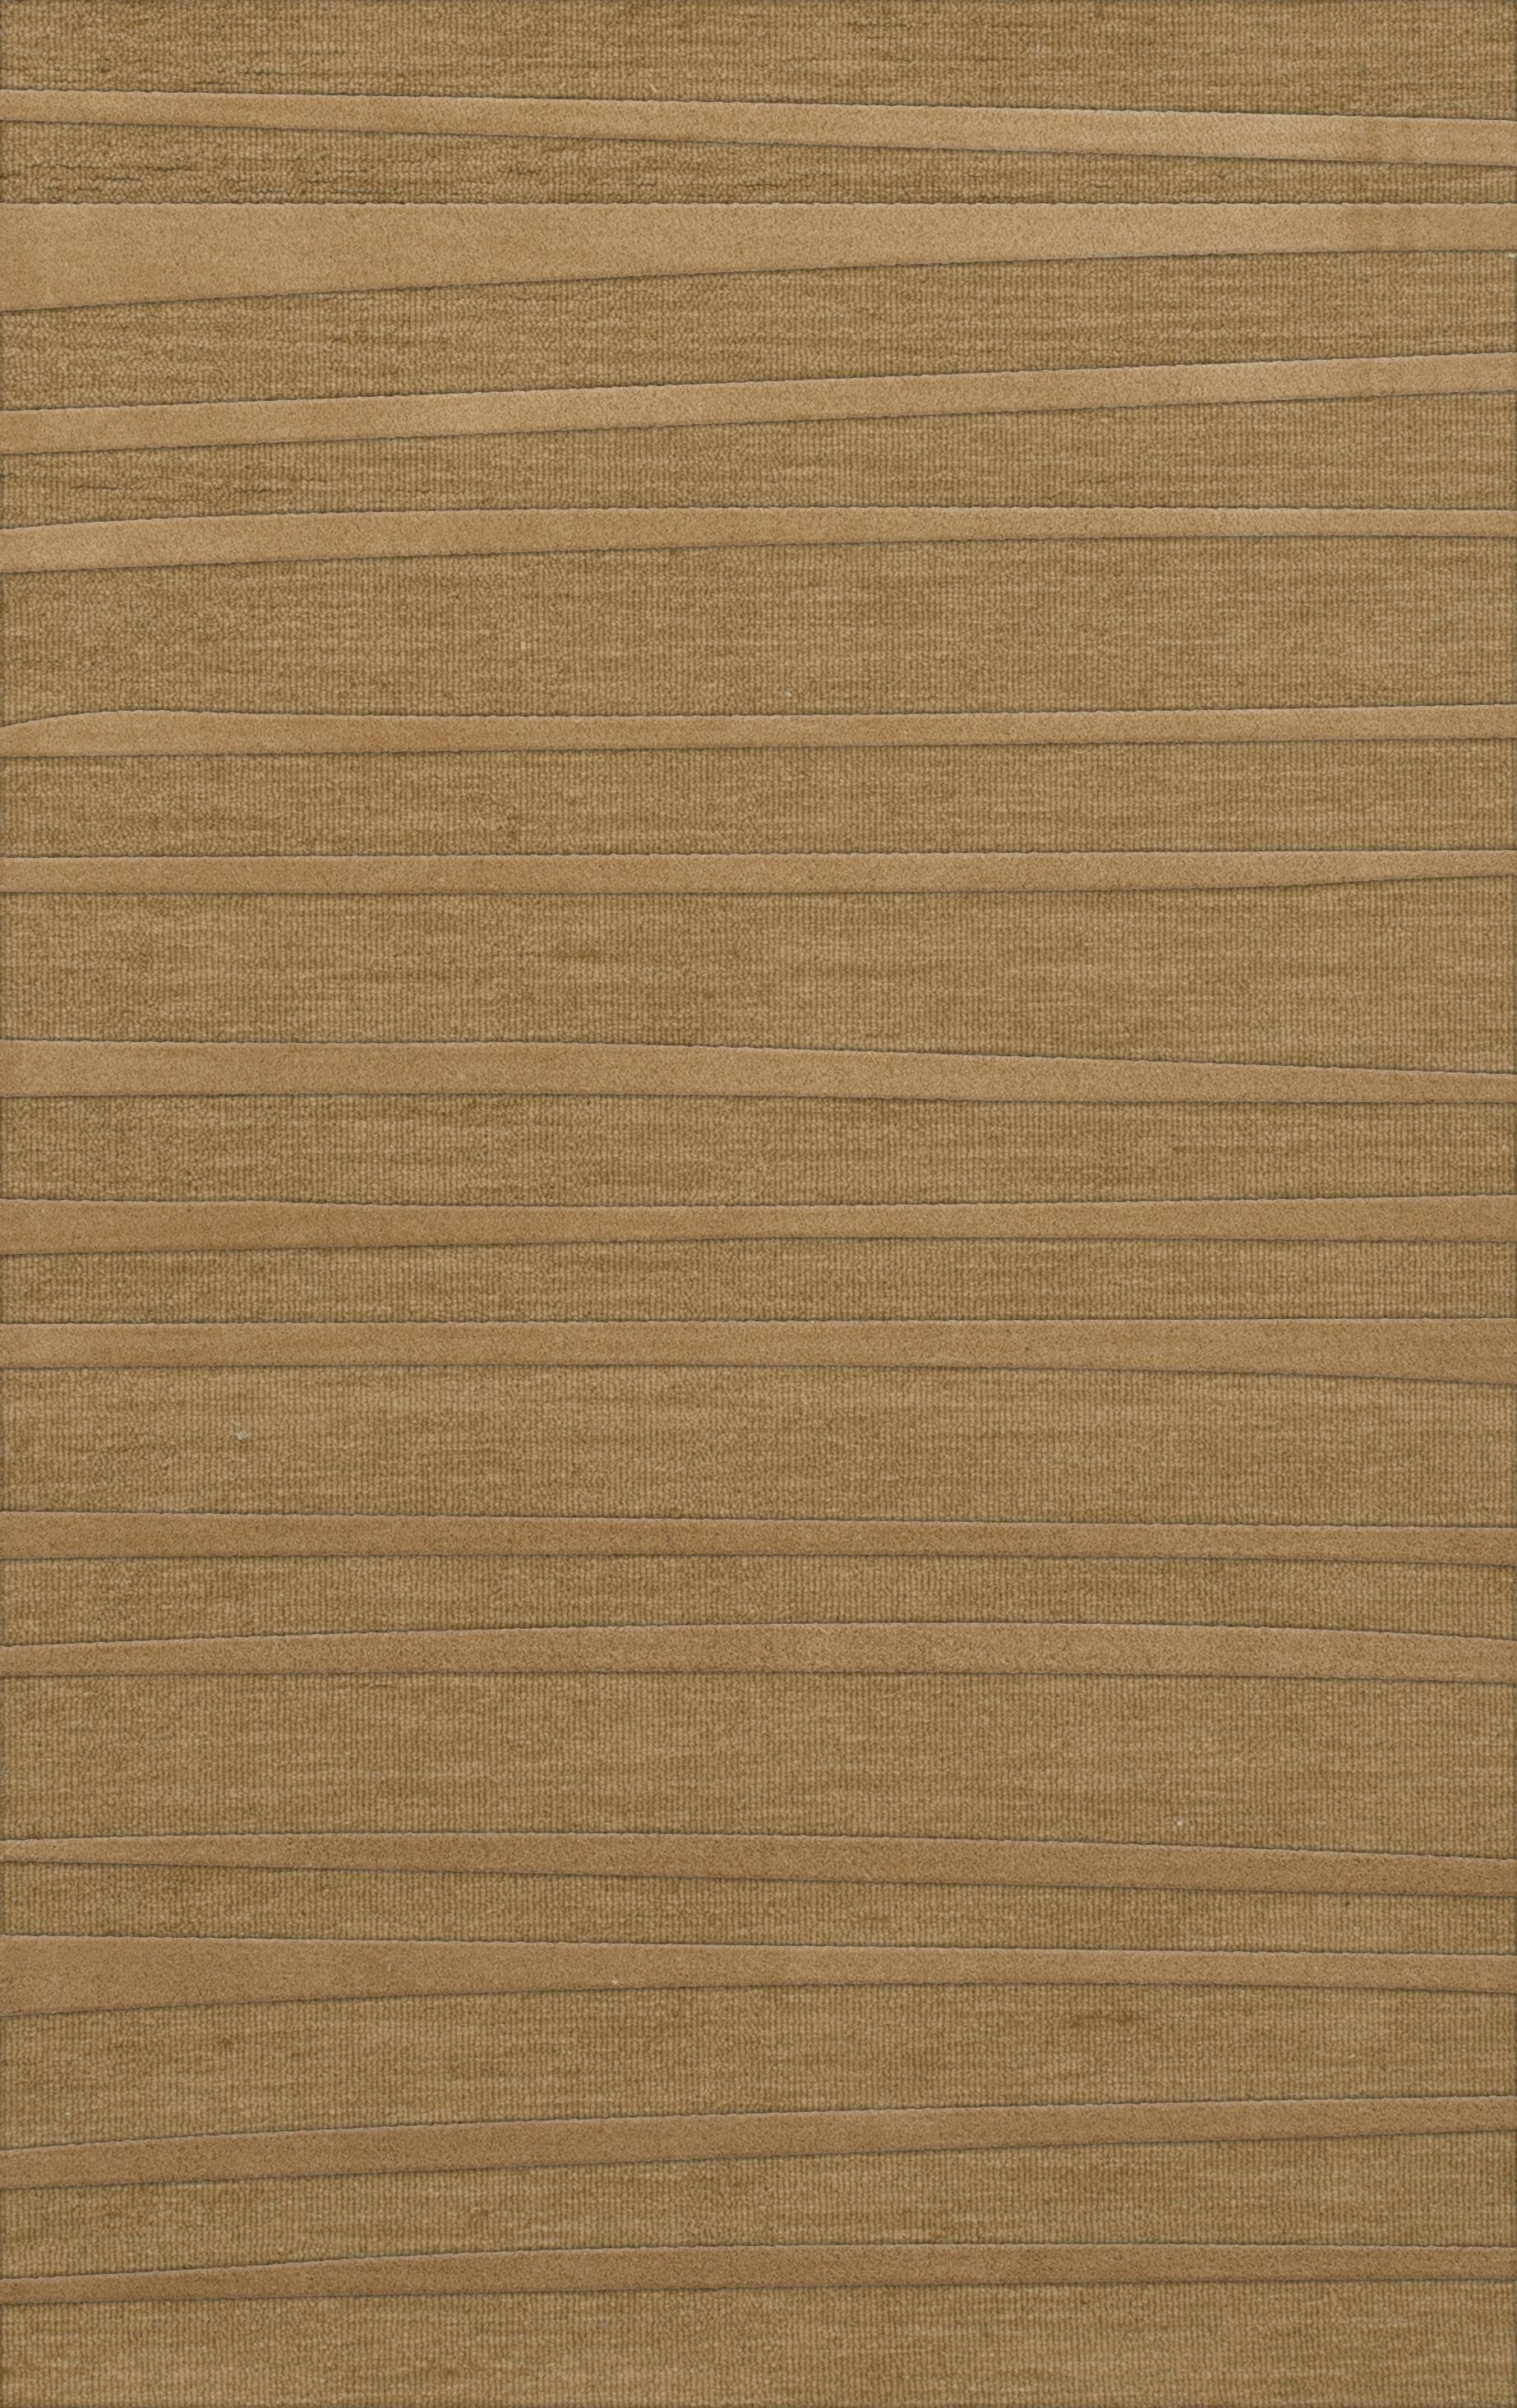 Dover Tufted Wool Wheat Area Rug Rug Size: Rectangle 12' x 18'